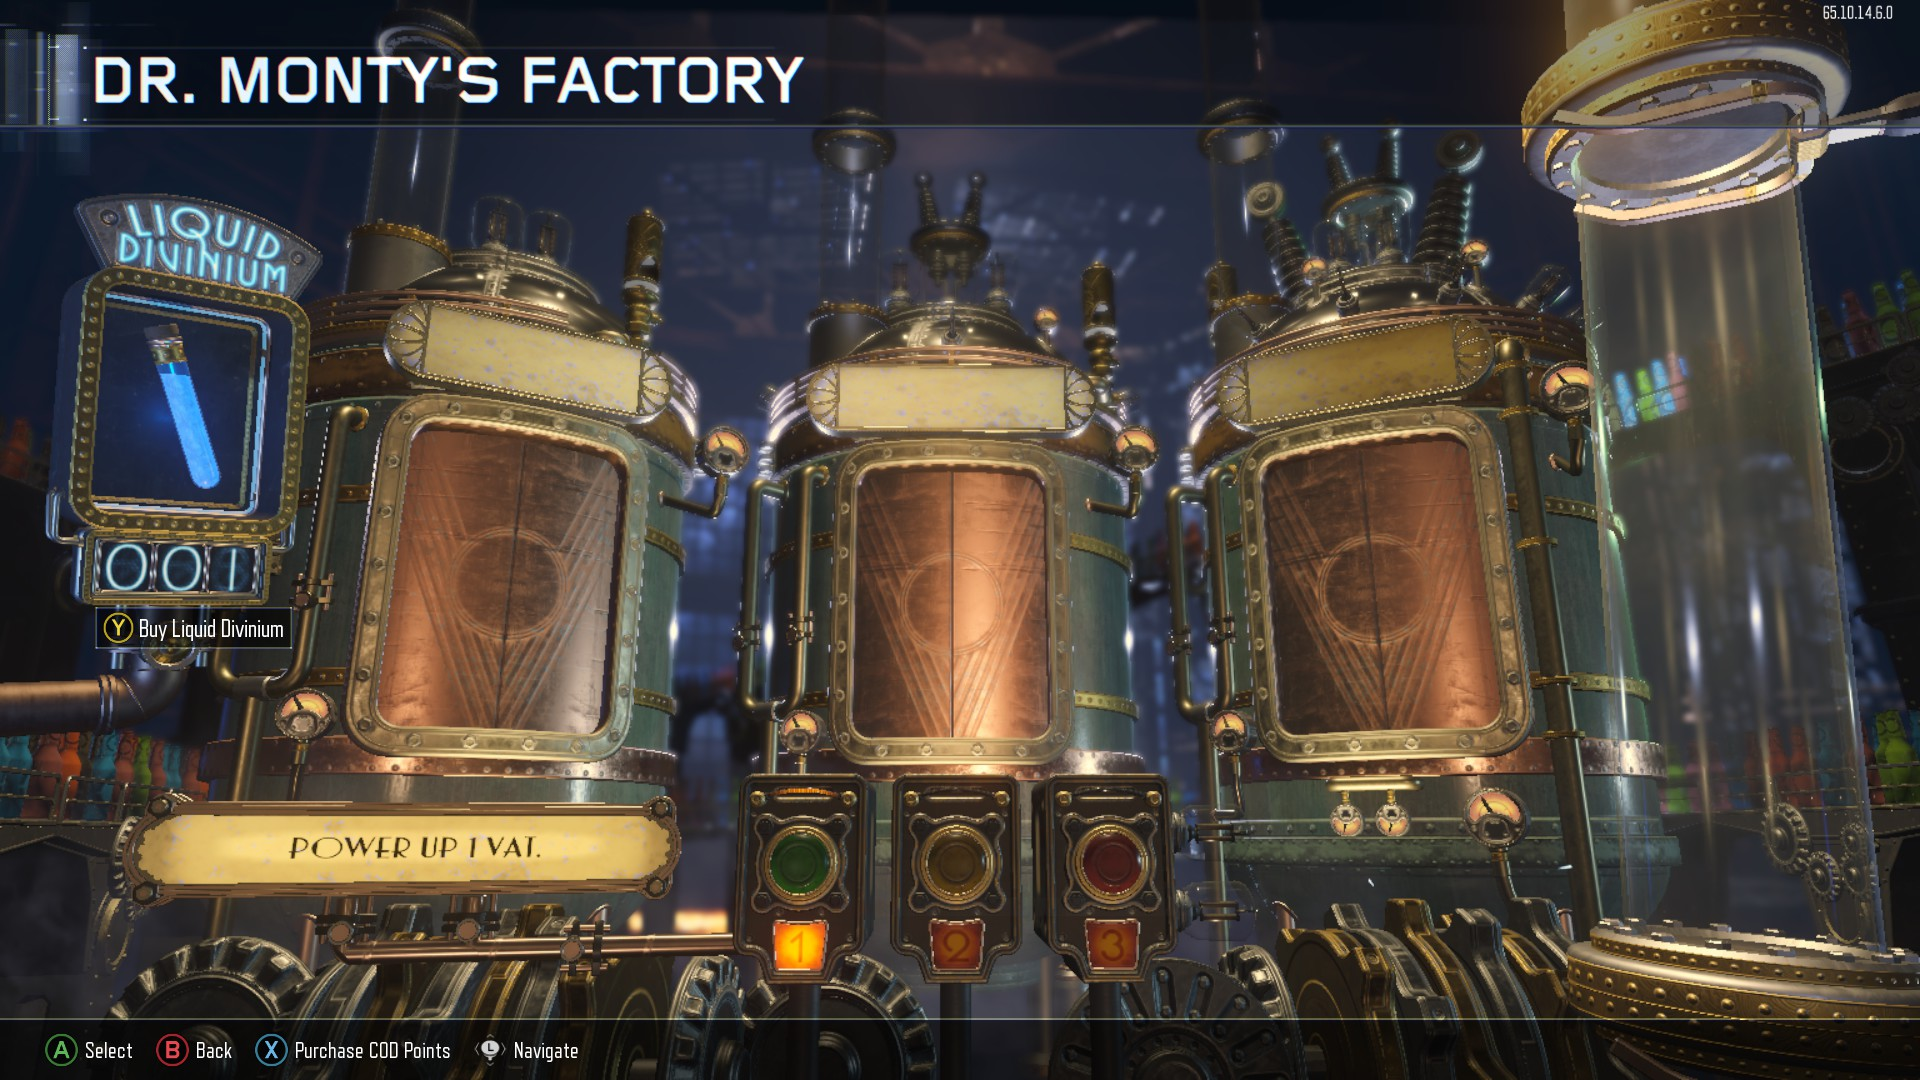 Dr Monty's Factory | Call of Duty Wiki | FANDOM powered by Wikia